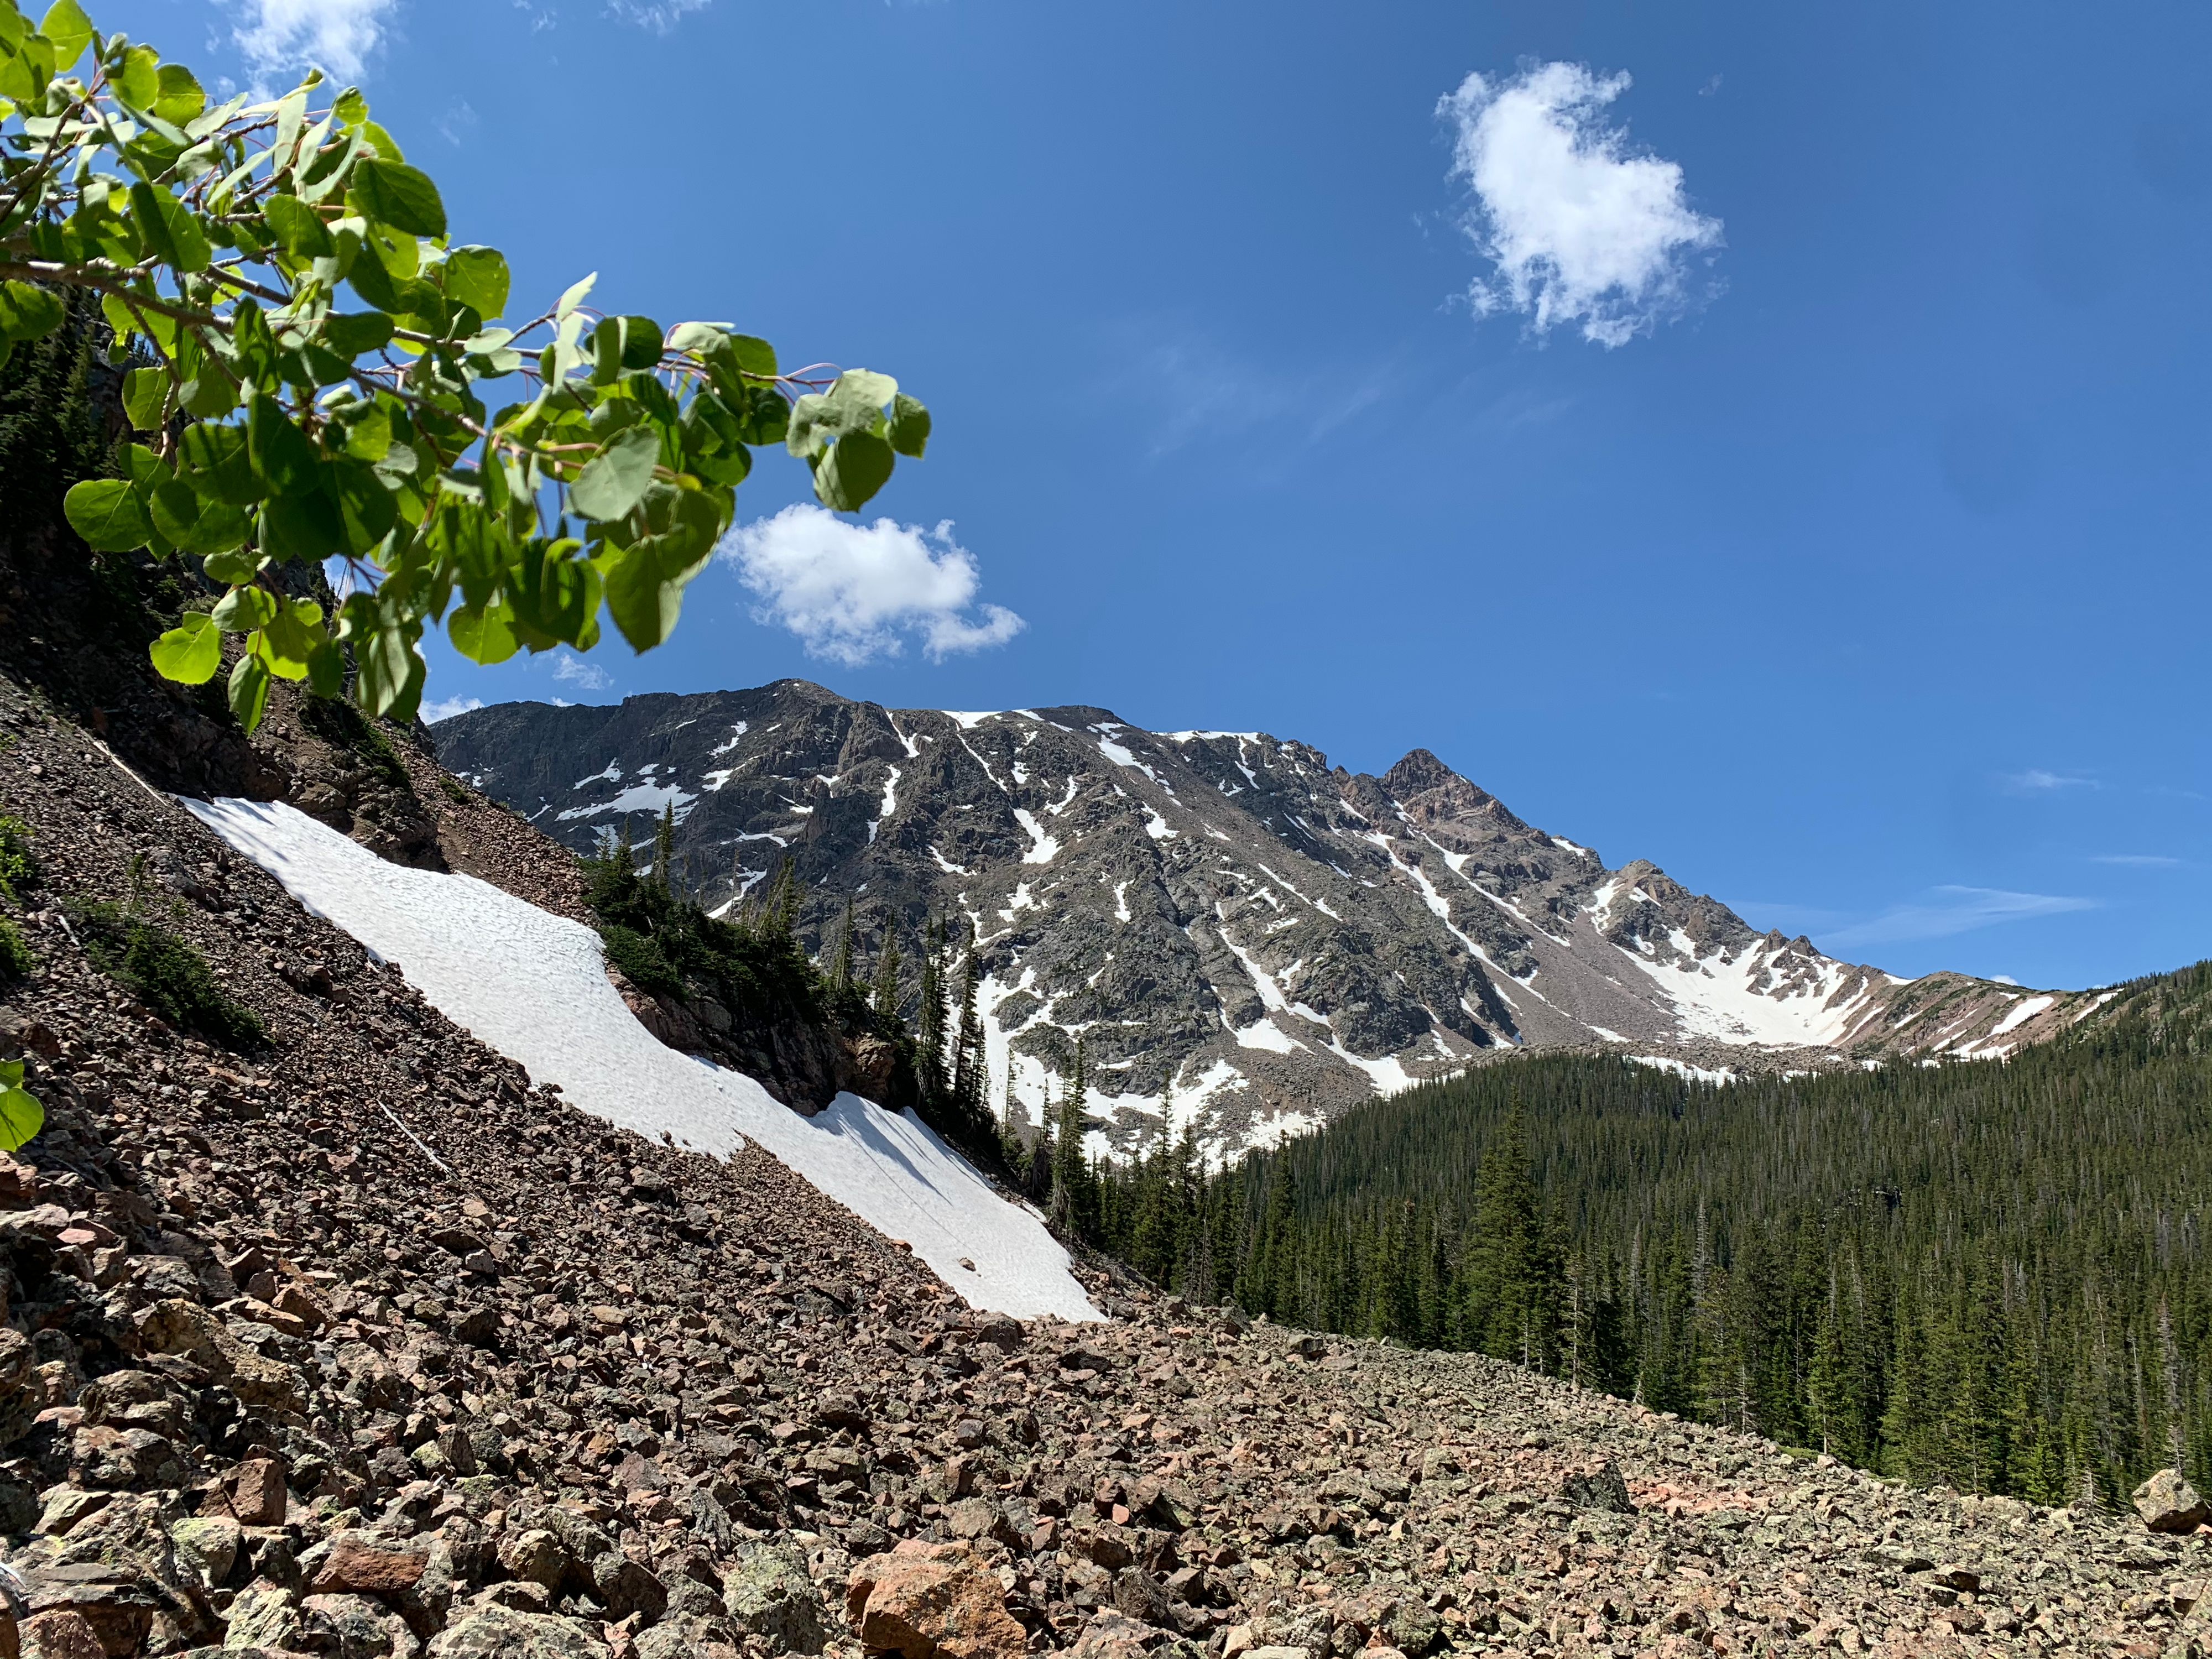 Looking up at the Eagles Nest, the striped peak on the far right of the ridgeline pictured here. This was the first view we had of the Nest while approaching the basin during a backpacking trip earlier in the 2020 summer season.